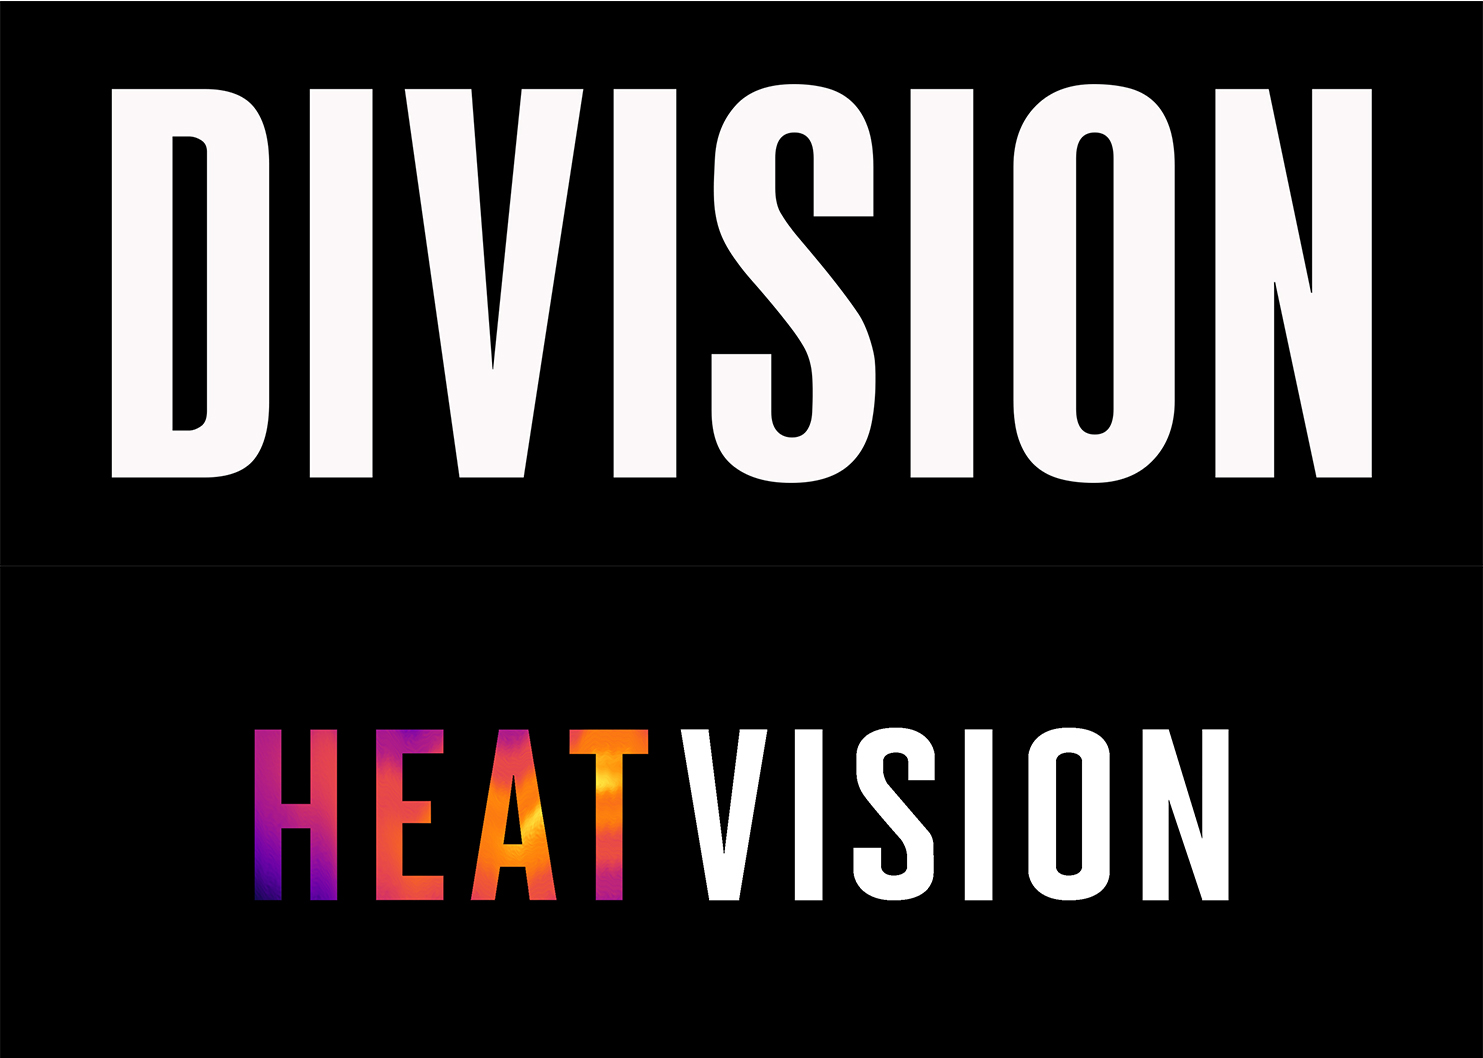 DIVISION launches HEATVISION welcoming emerging directors to join its award-winning roster